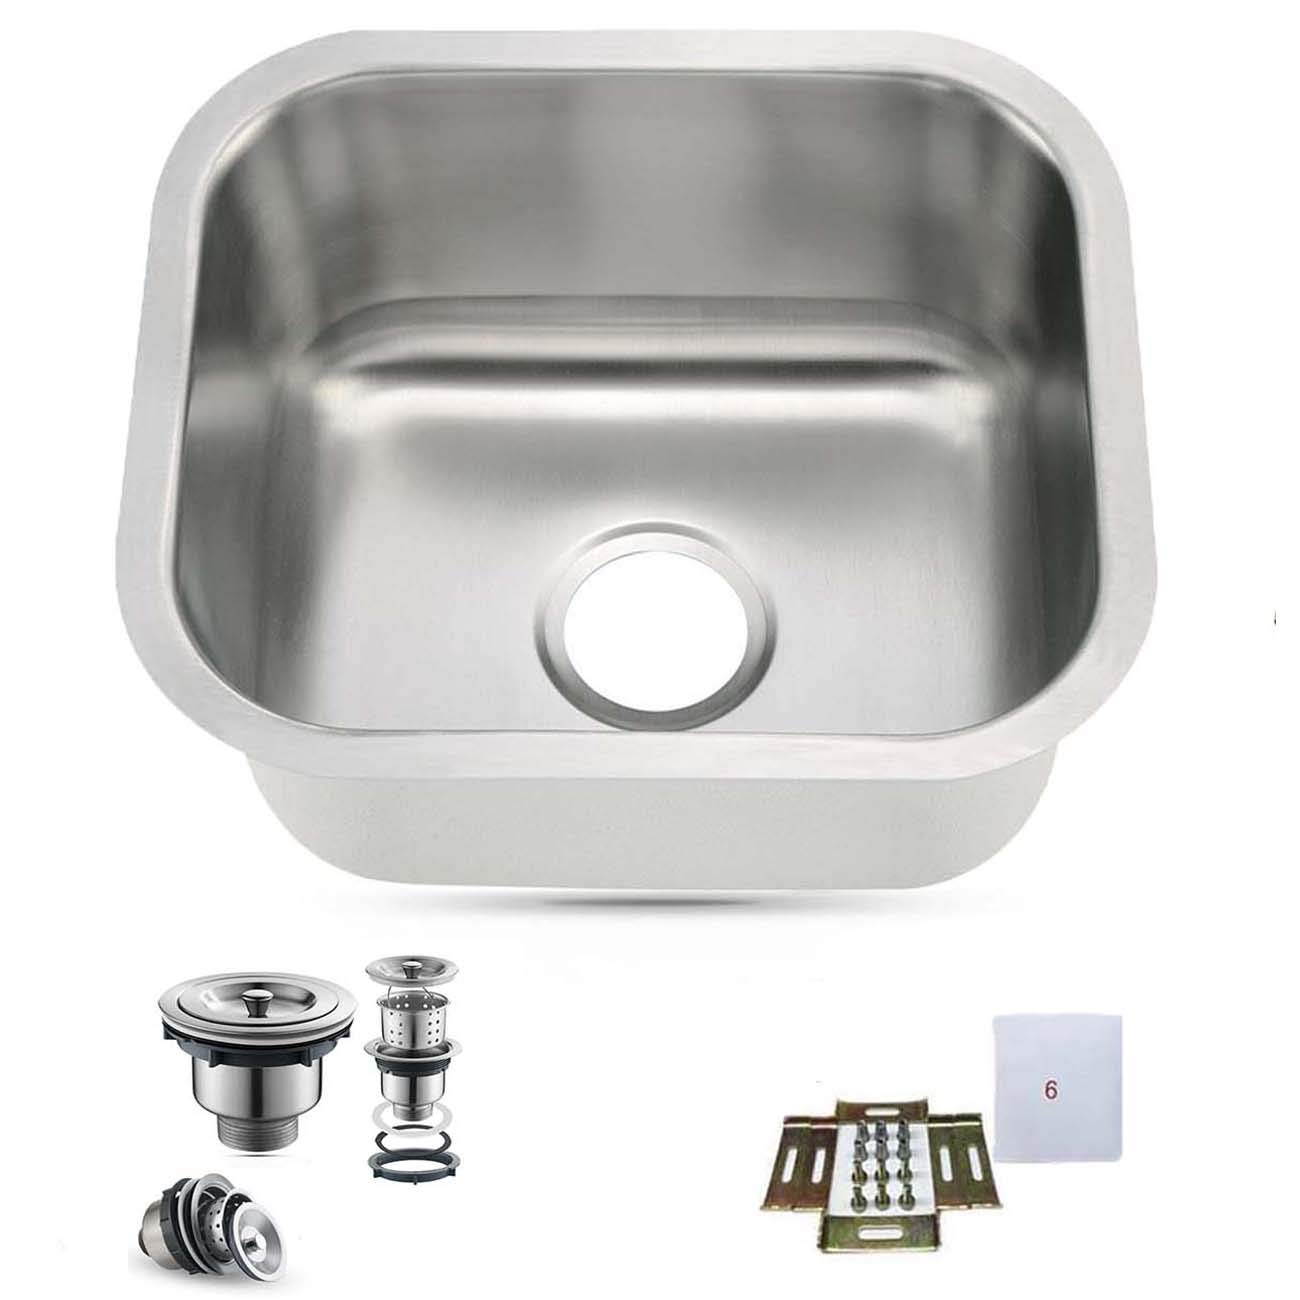 15''X13'' Undermount Single Bowl 304-Stainless Steel Small Bar/Prep Sink 18Gauge by Oakland